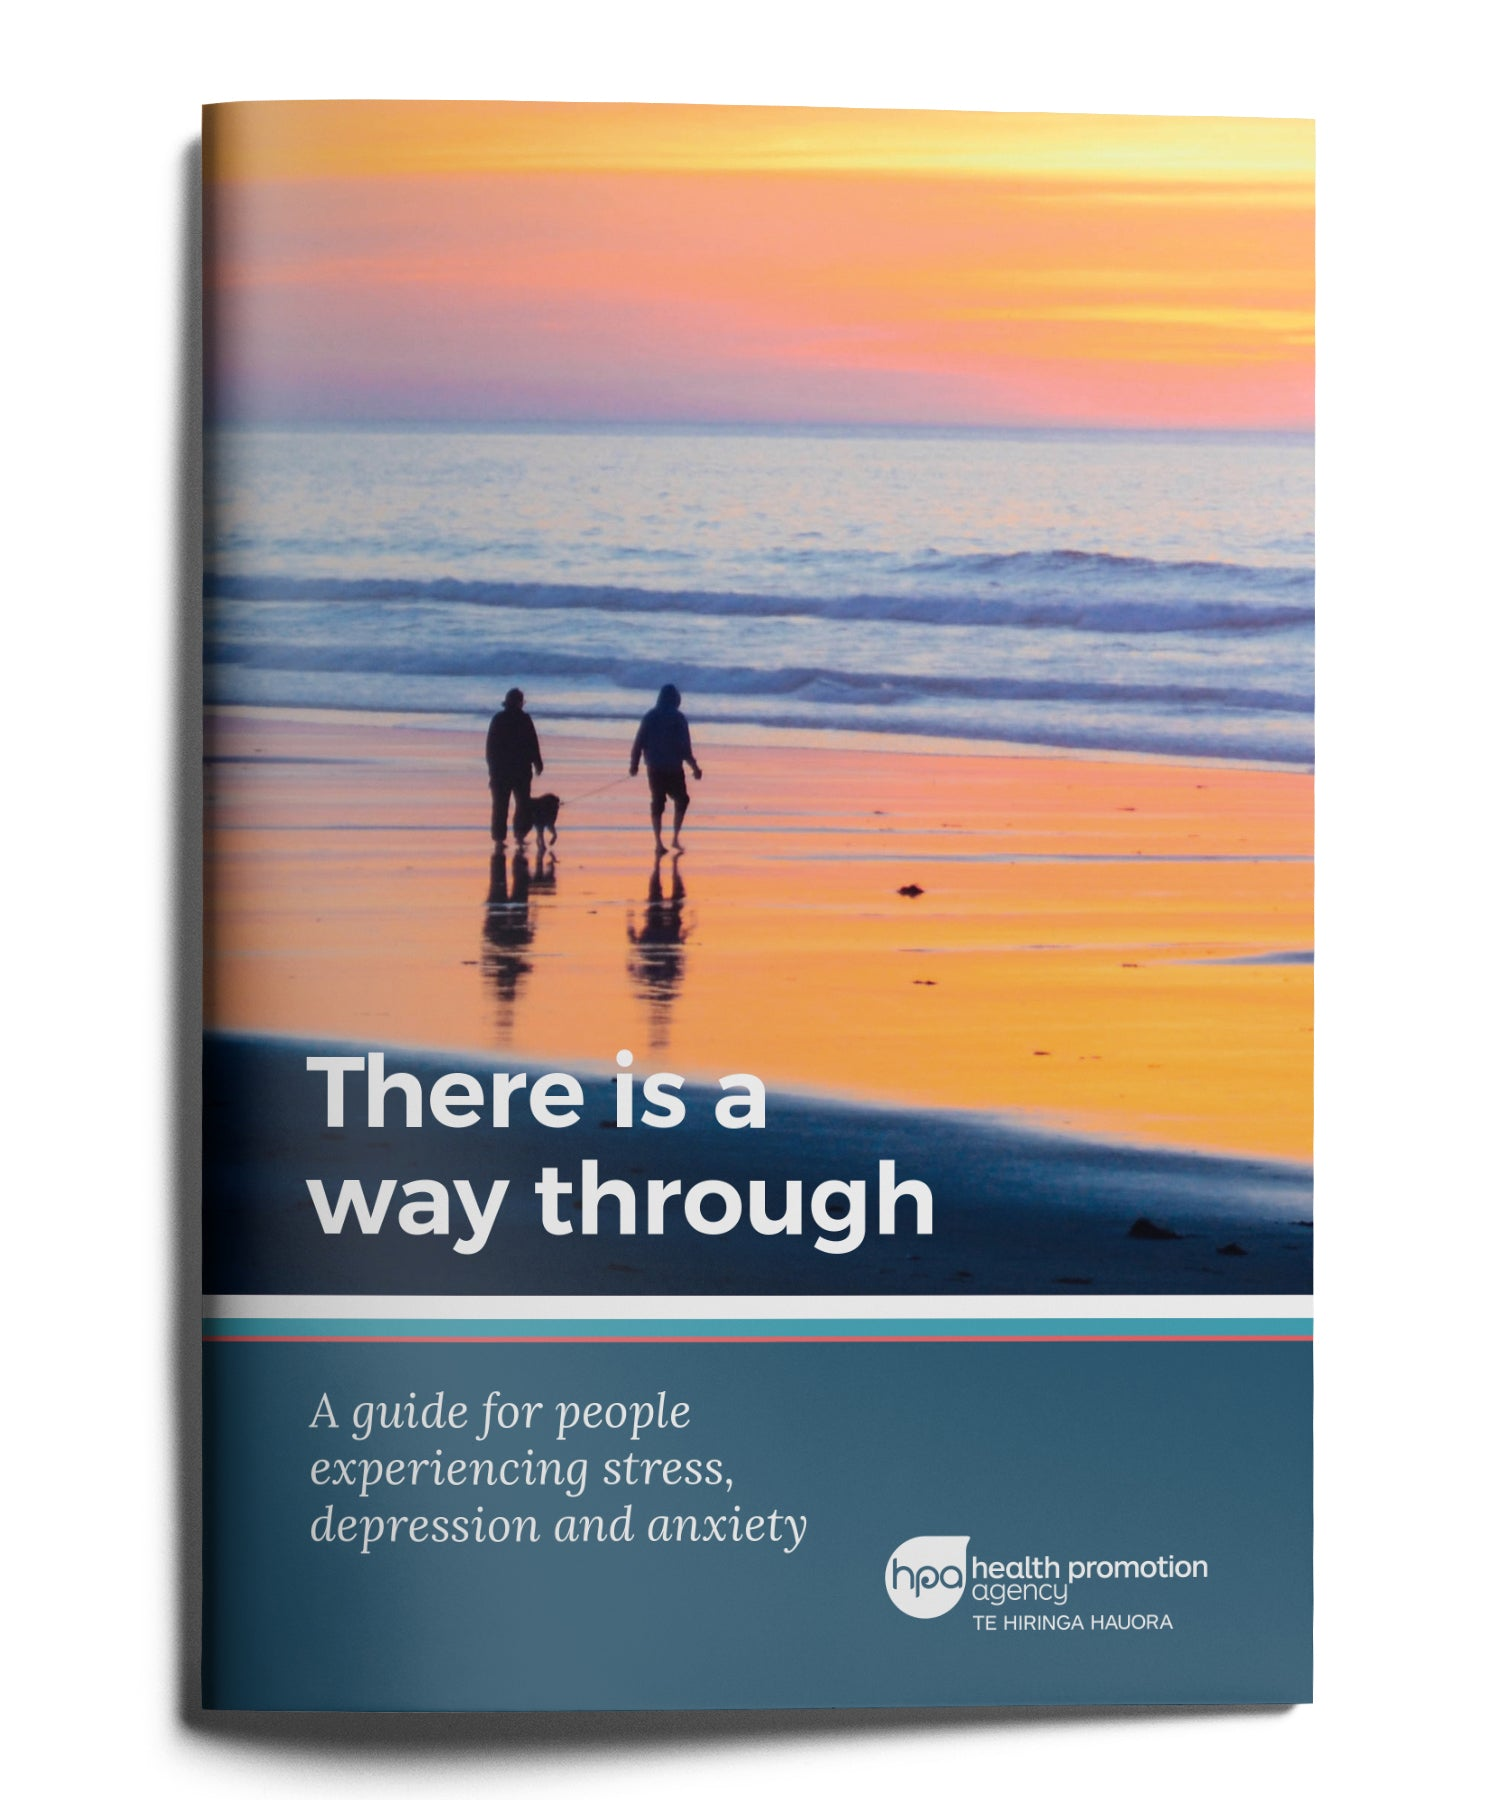 There is a way through. A guide for people experiencing stress, depression and anxiety